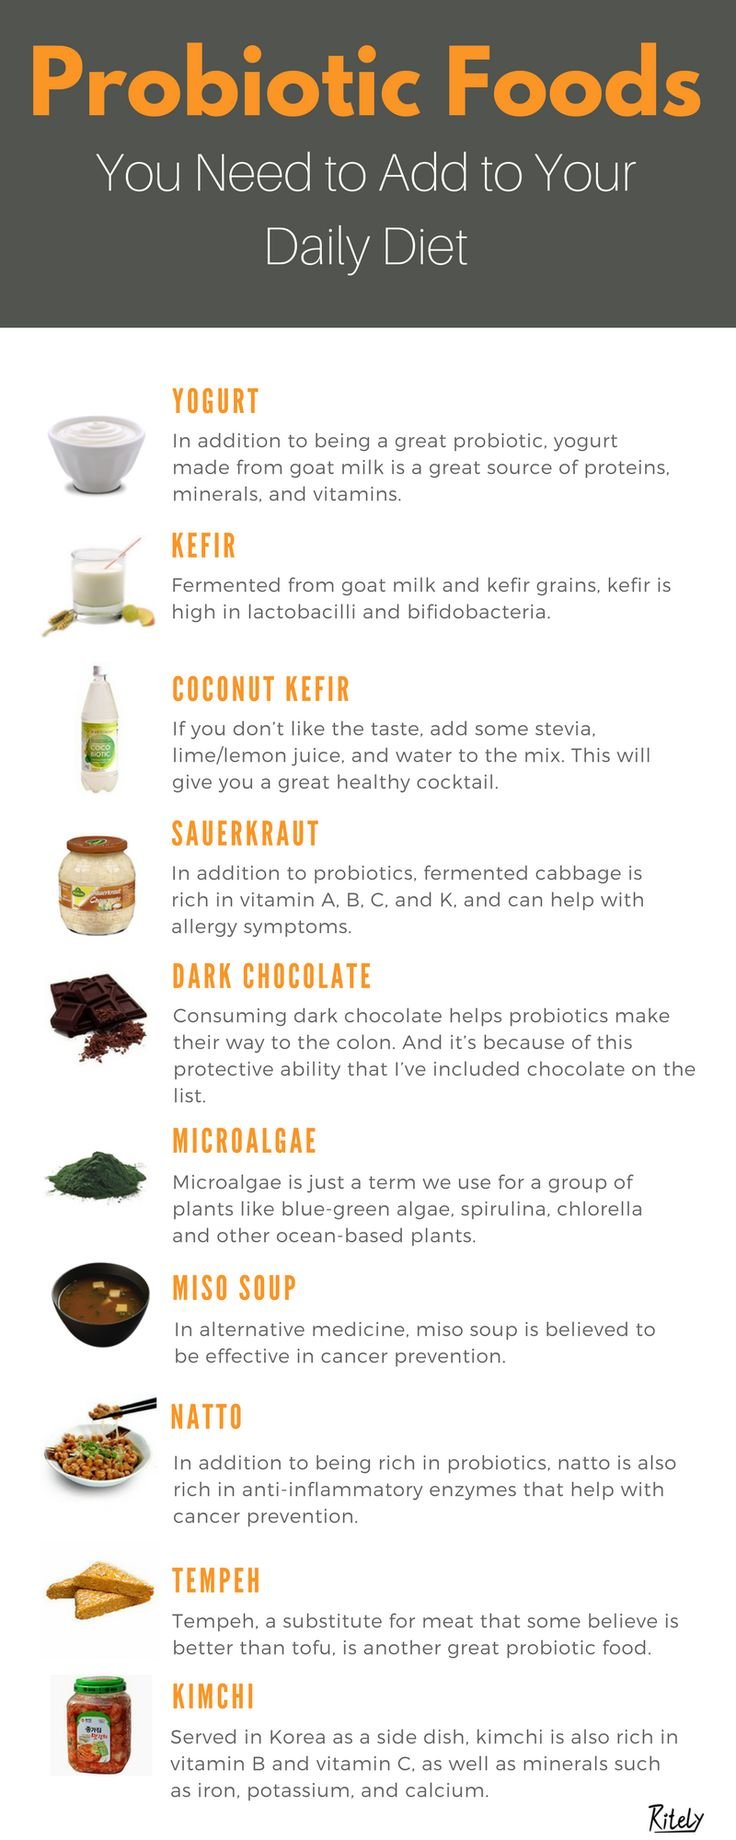 Consuming probiotic foods is great for your gut health. And if you didn't know, most diseases come from gut inflammation.